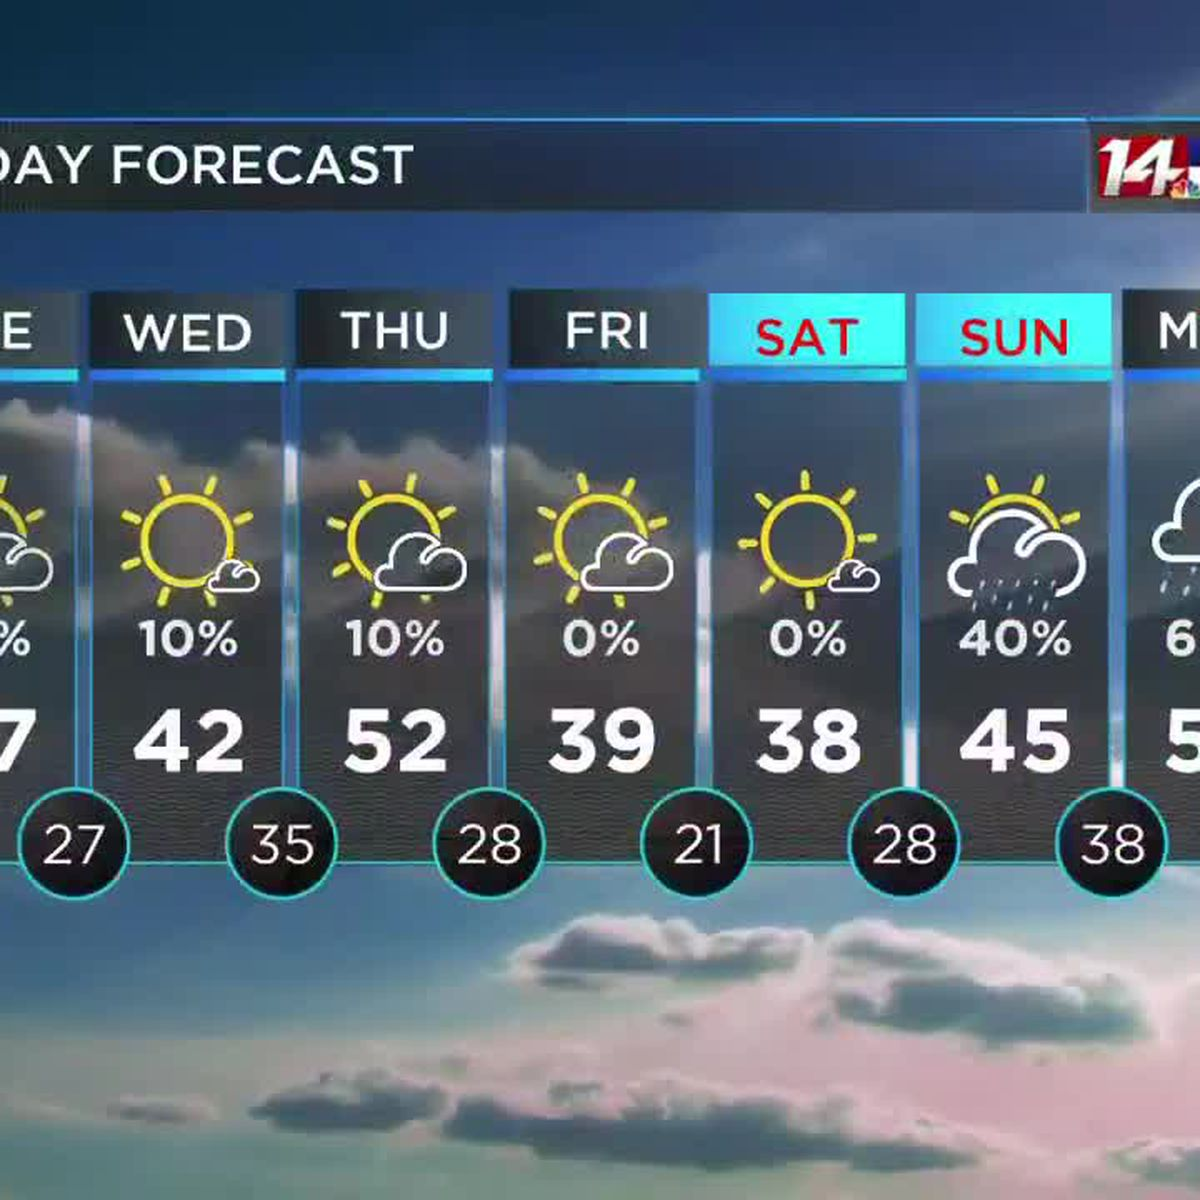 14 First Alert 1/19 - Midday